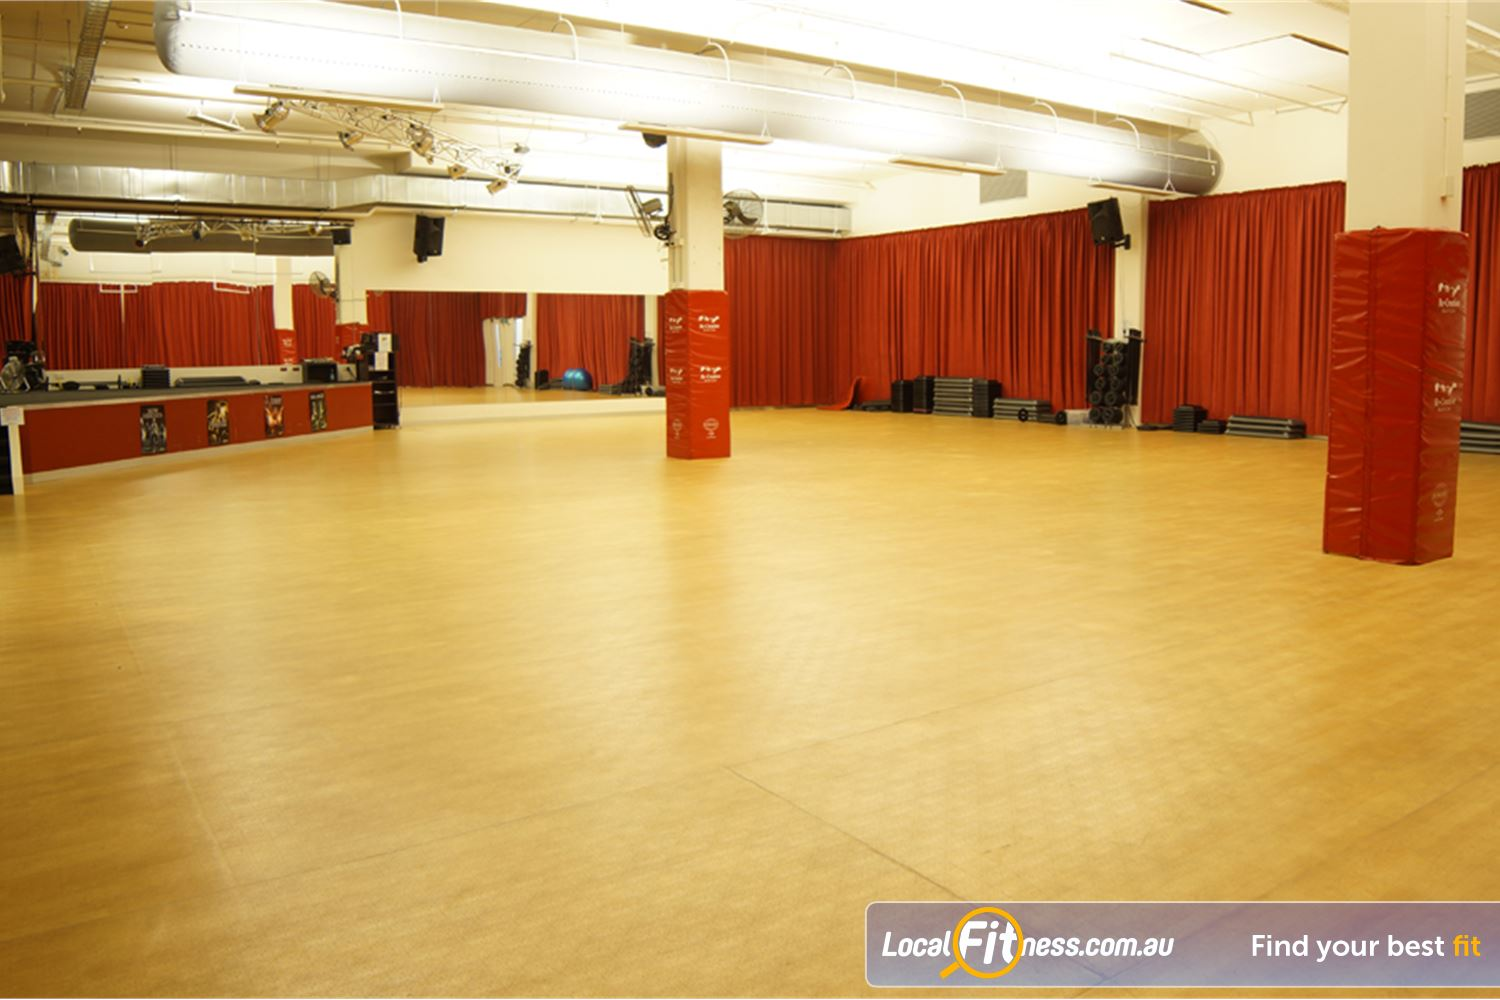 Goodlife Health Clubs South Melbourne The dedicated South Melbourne group fitness studio with virtual classes.